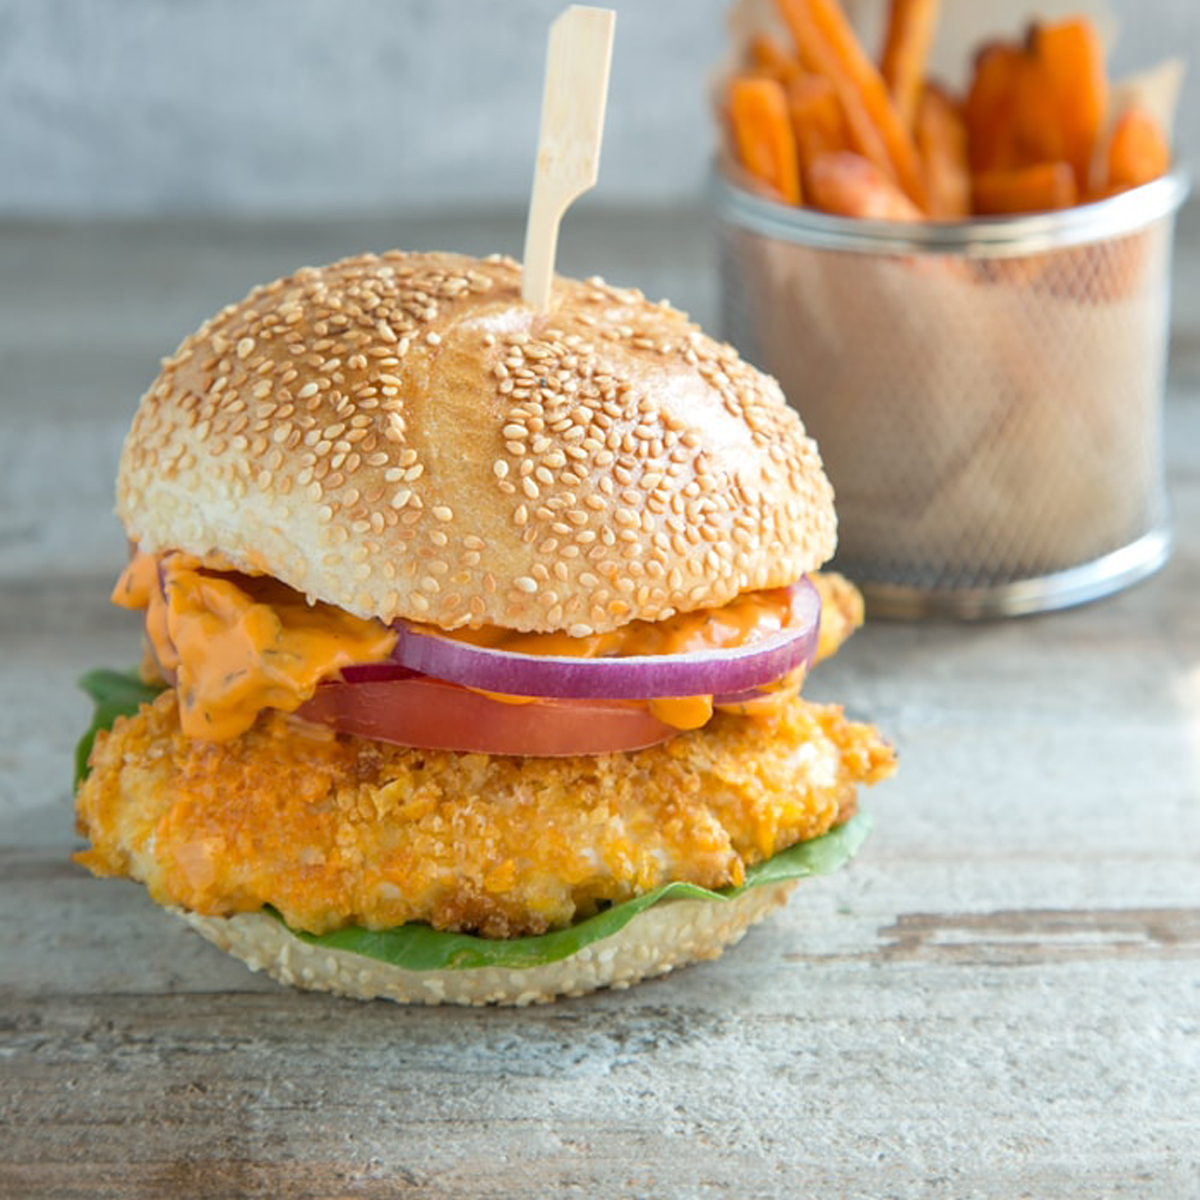 Oven Fried Chicken Burger With Spicy Mayo The Petite Cook